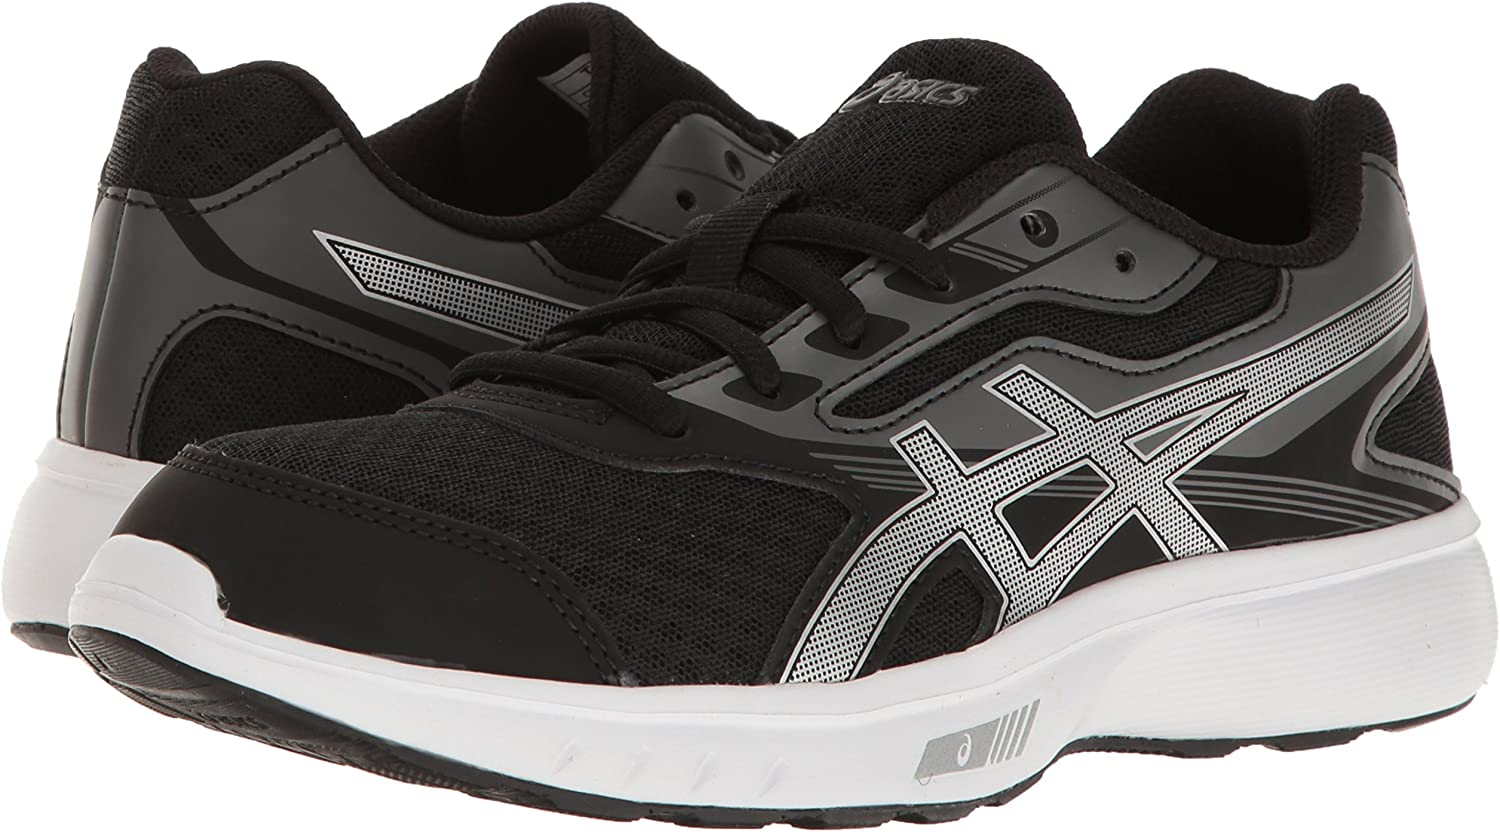 Asics Stormer WomenS Zapatillas Para Correr - AW17: Amazon.es ...